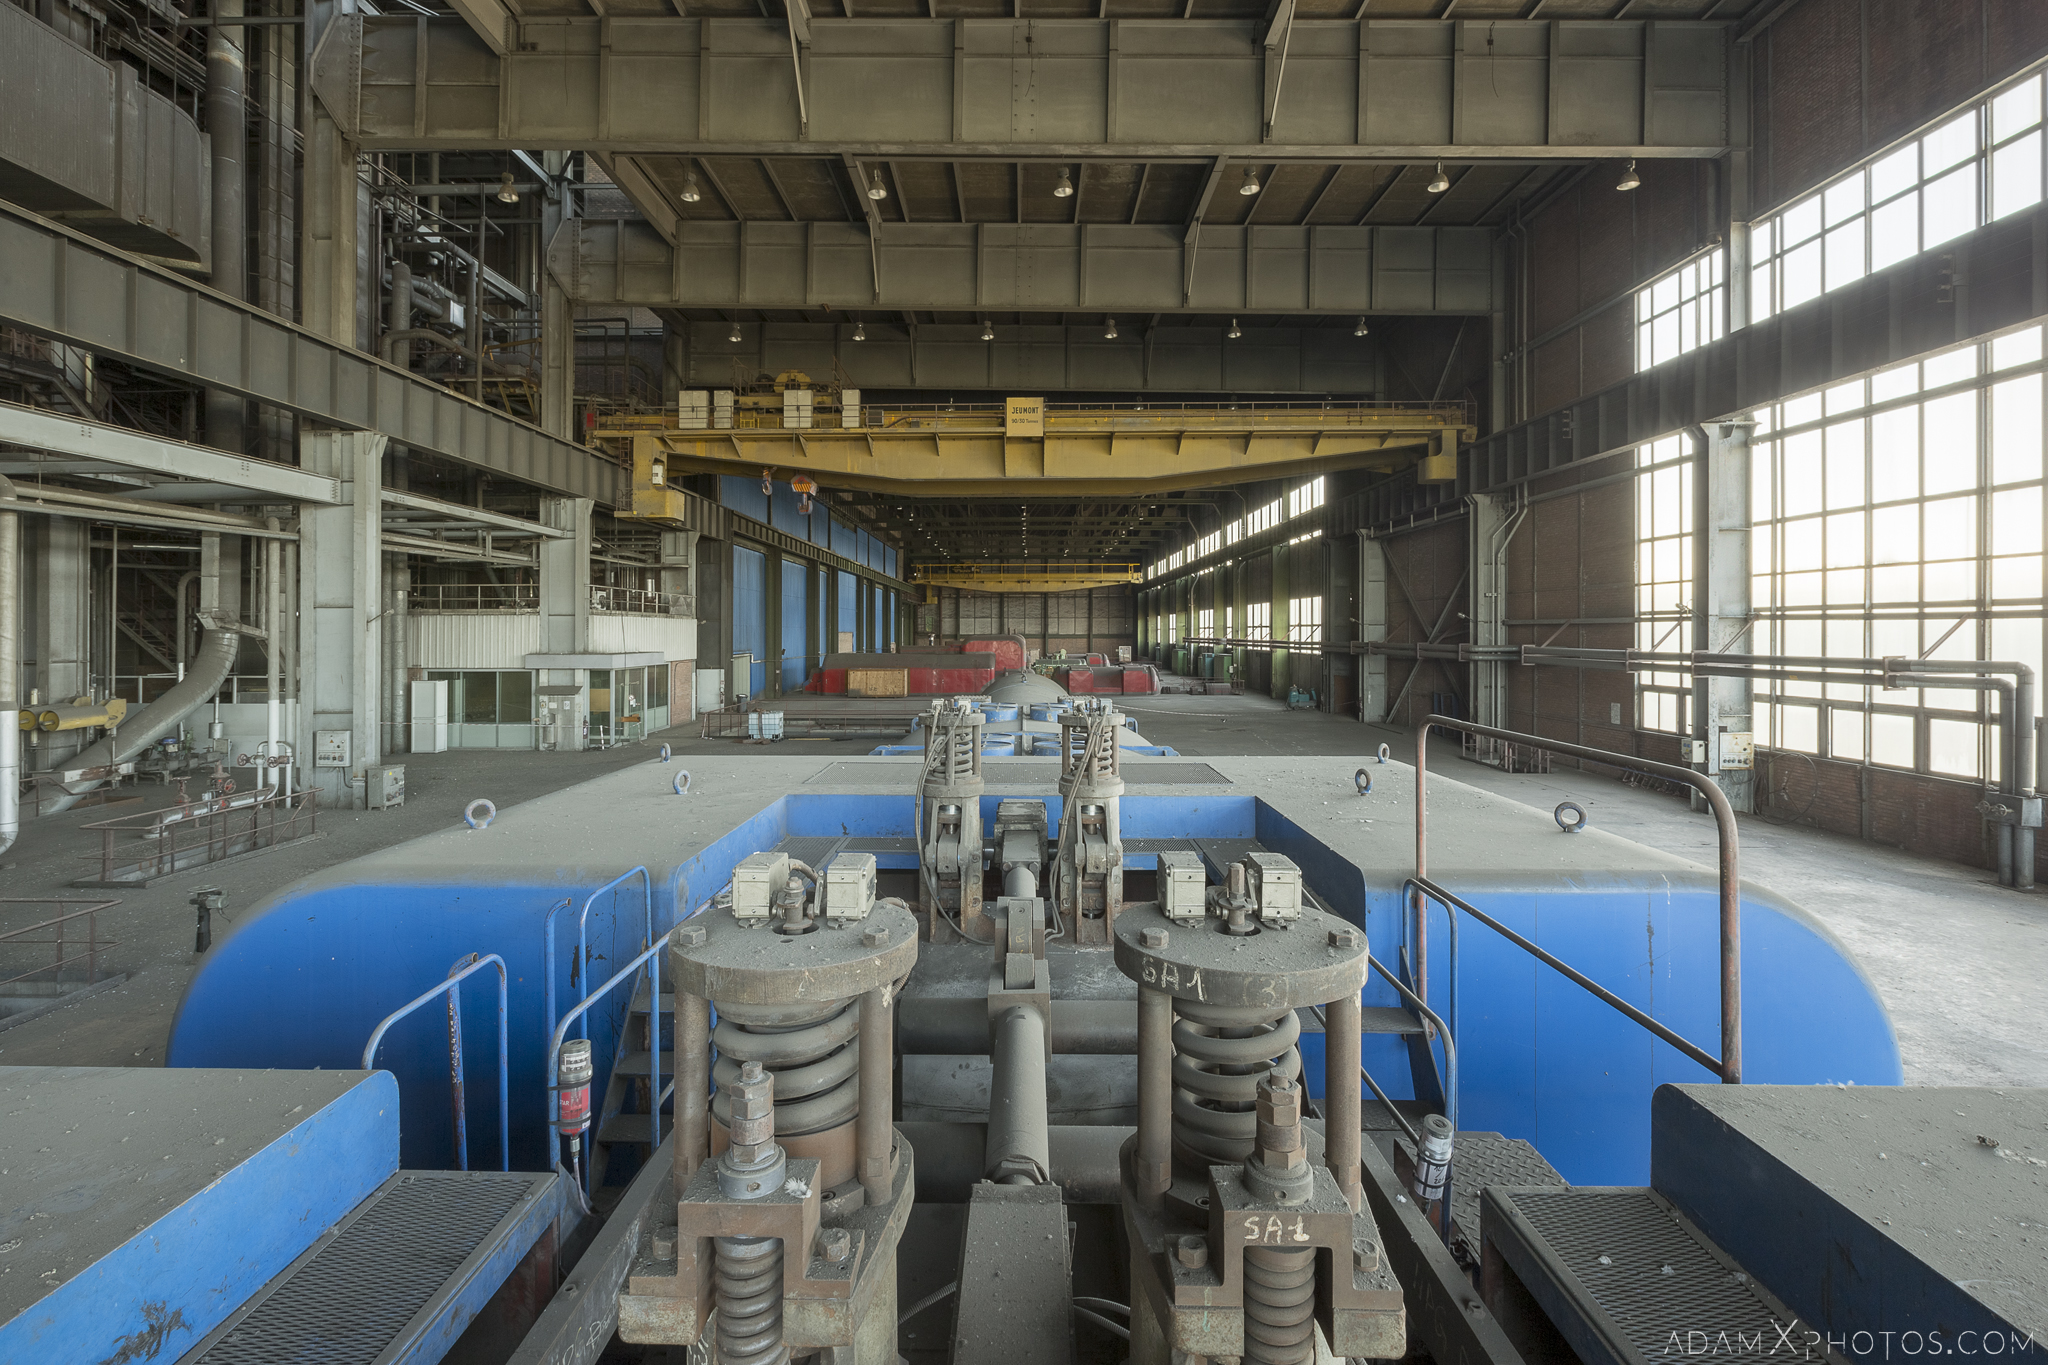 On top of rateau schneider blue turbine hall Centrale de schneider powerplant power plant industrial industy Adam X Urban Exploration France Access 2017 Abandoned decay lost forgotten derelict location creepy haunting eerie